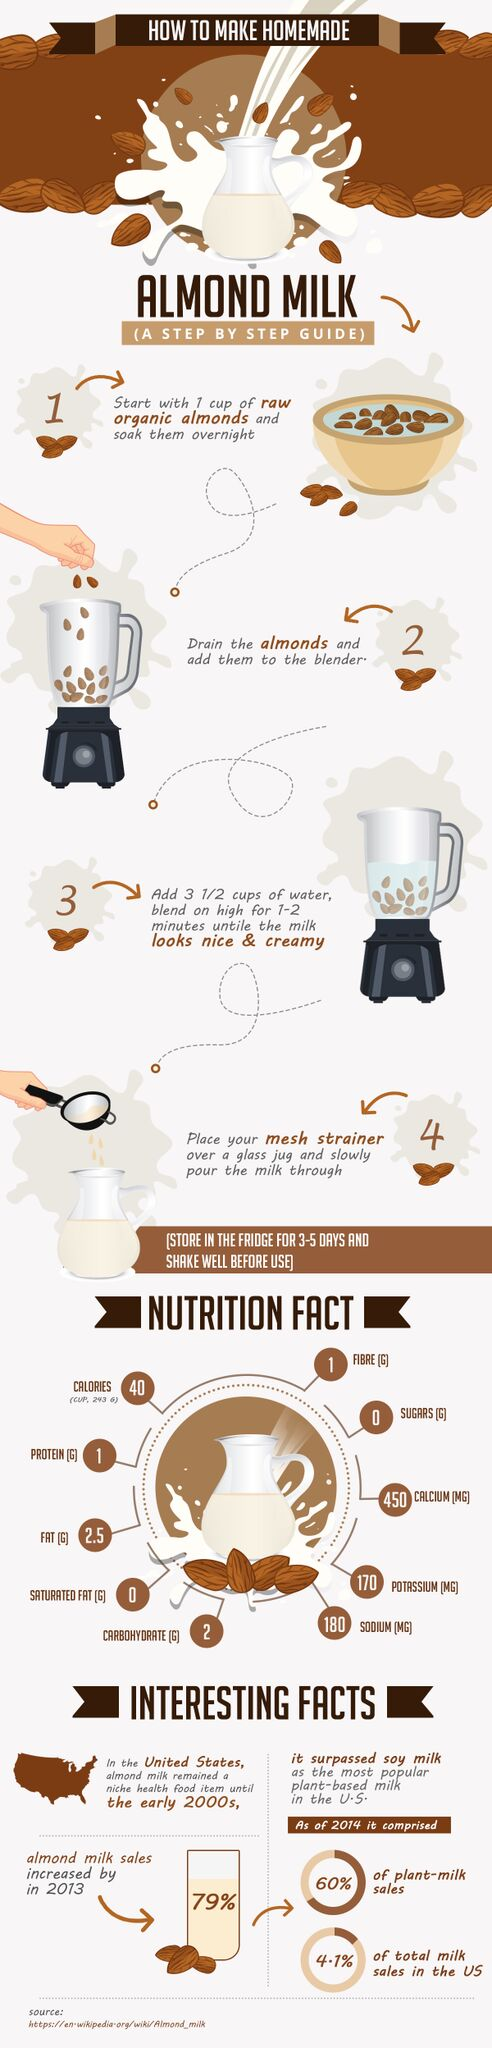 almond-milk-infographic